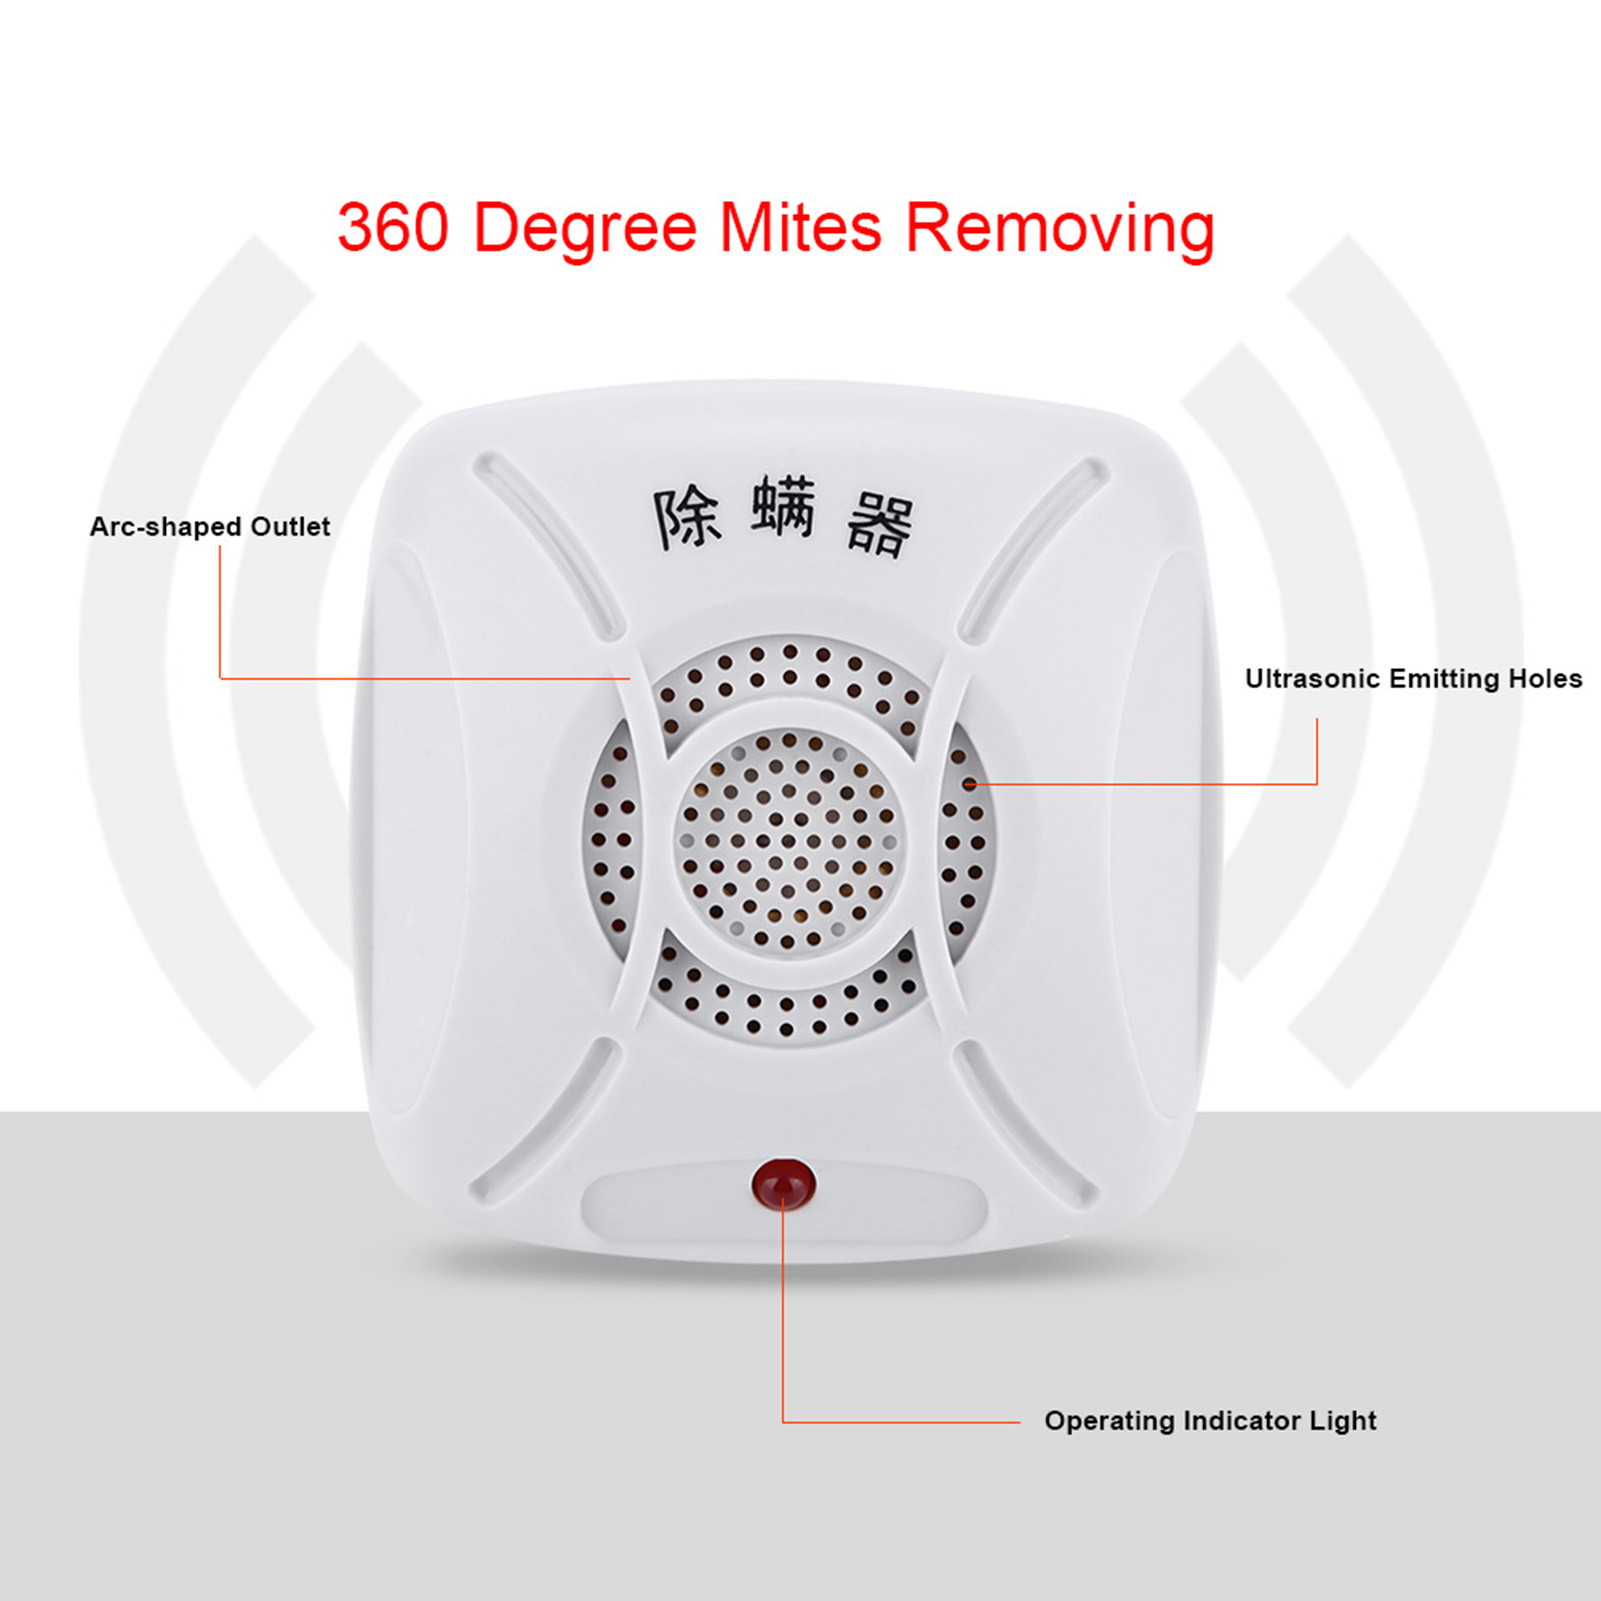 220V-Ultrasonic-Dust-Mite-Controller-Repeller-Low-Noise-Mites-Removing-Device-DH